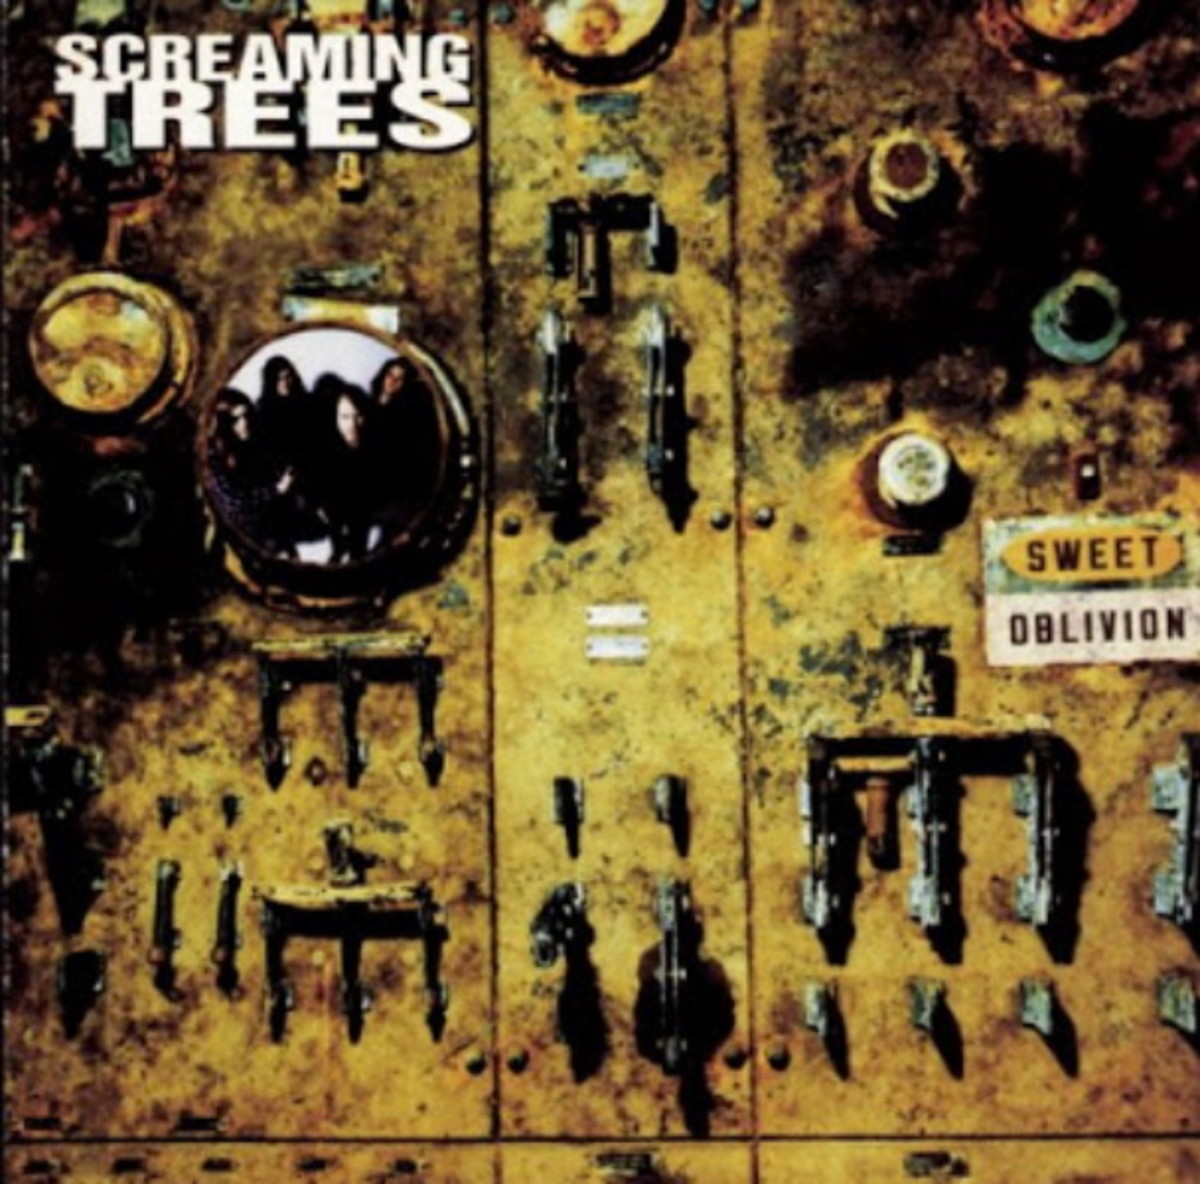 """Sweet Oblivion"" by Screaming Trees"